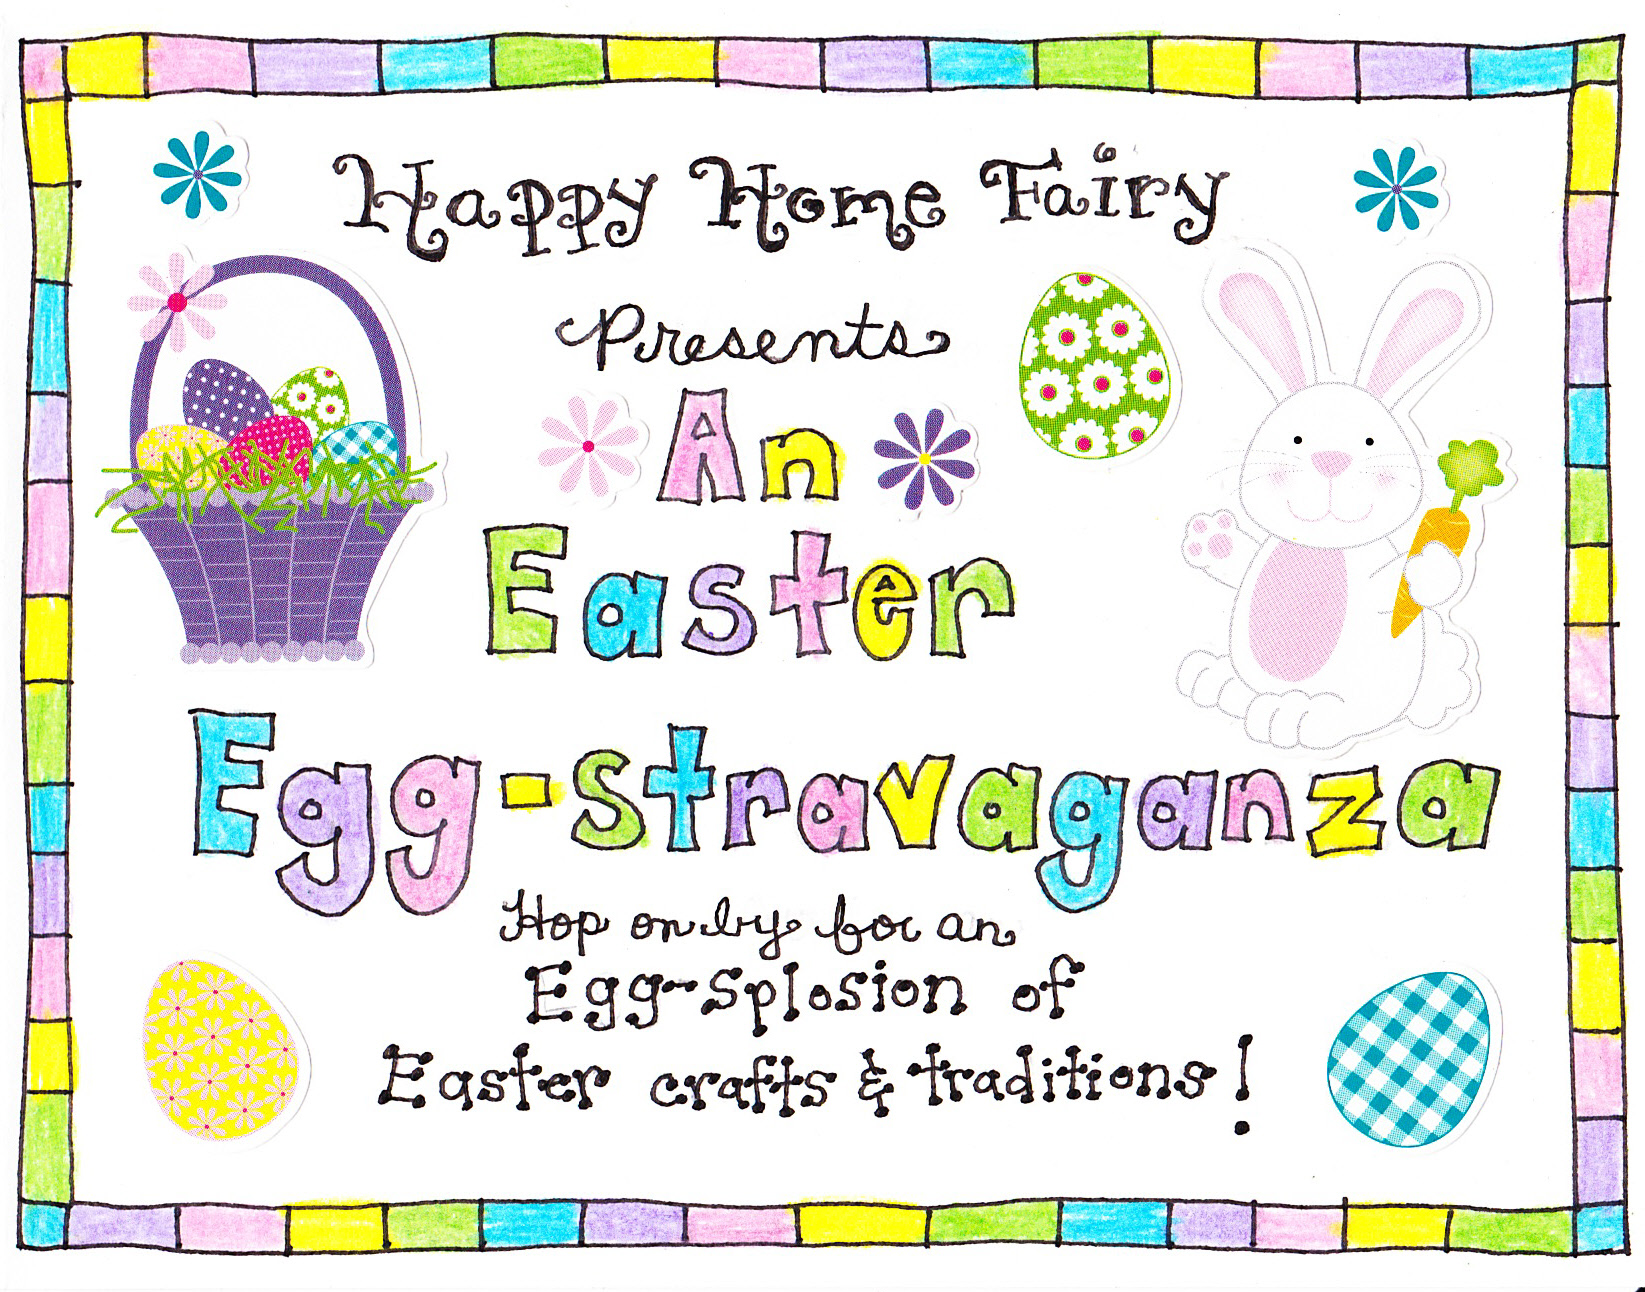 photo regarding Easter Printable titled Easter Early morning Scavenger Hunt - Cost-free Printable! - Content